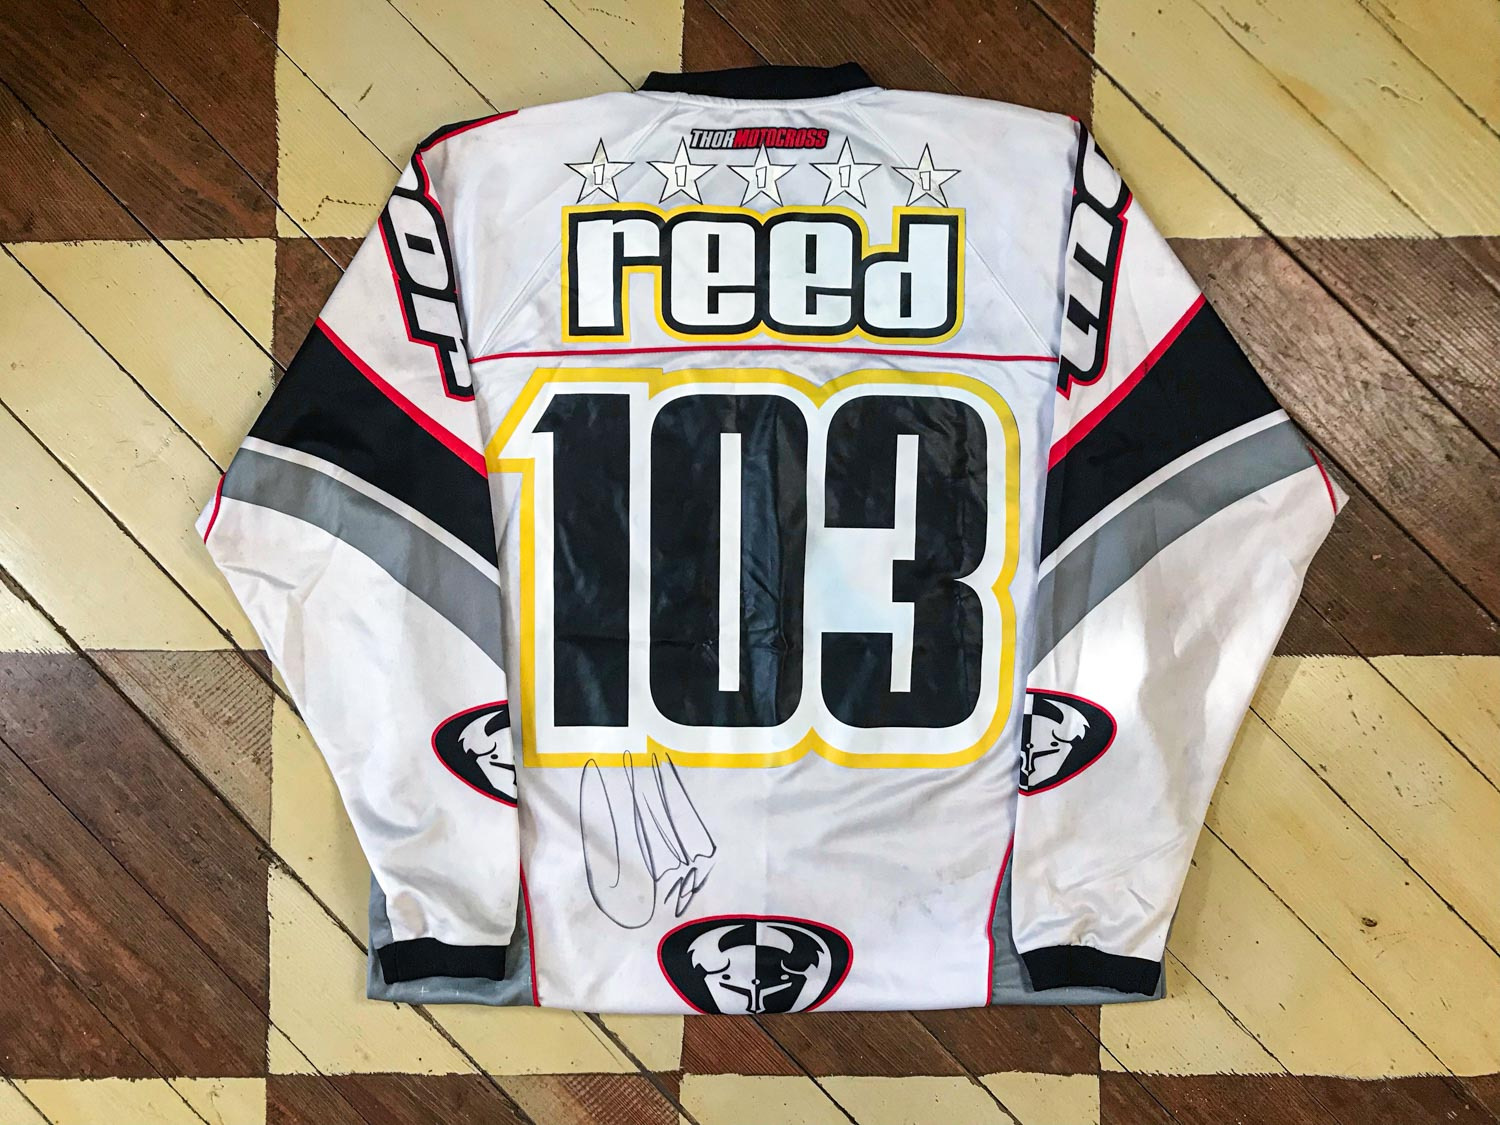 Garage Finds | Chad Reed Rookie Season Jersey - Swapmoto Live